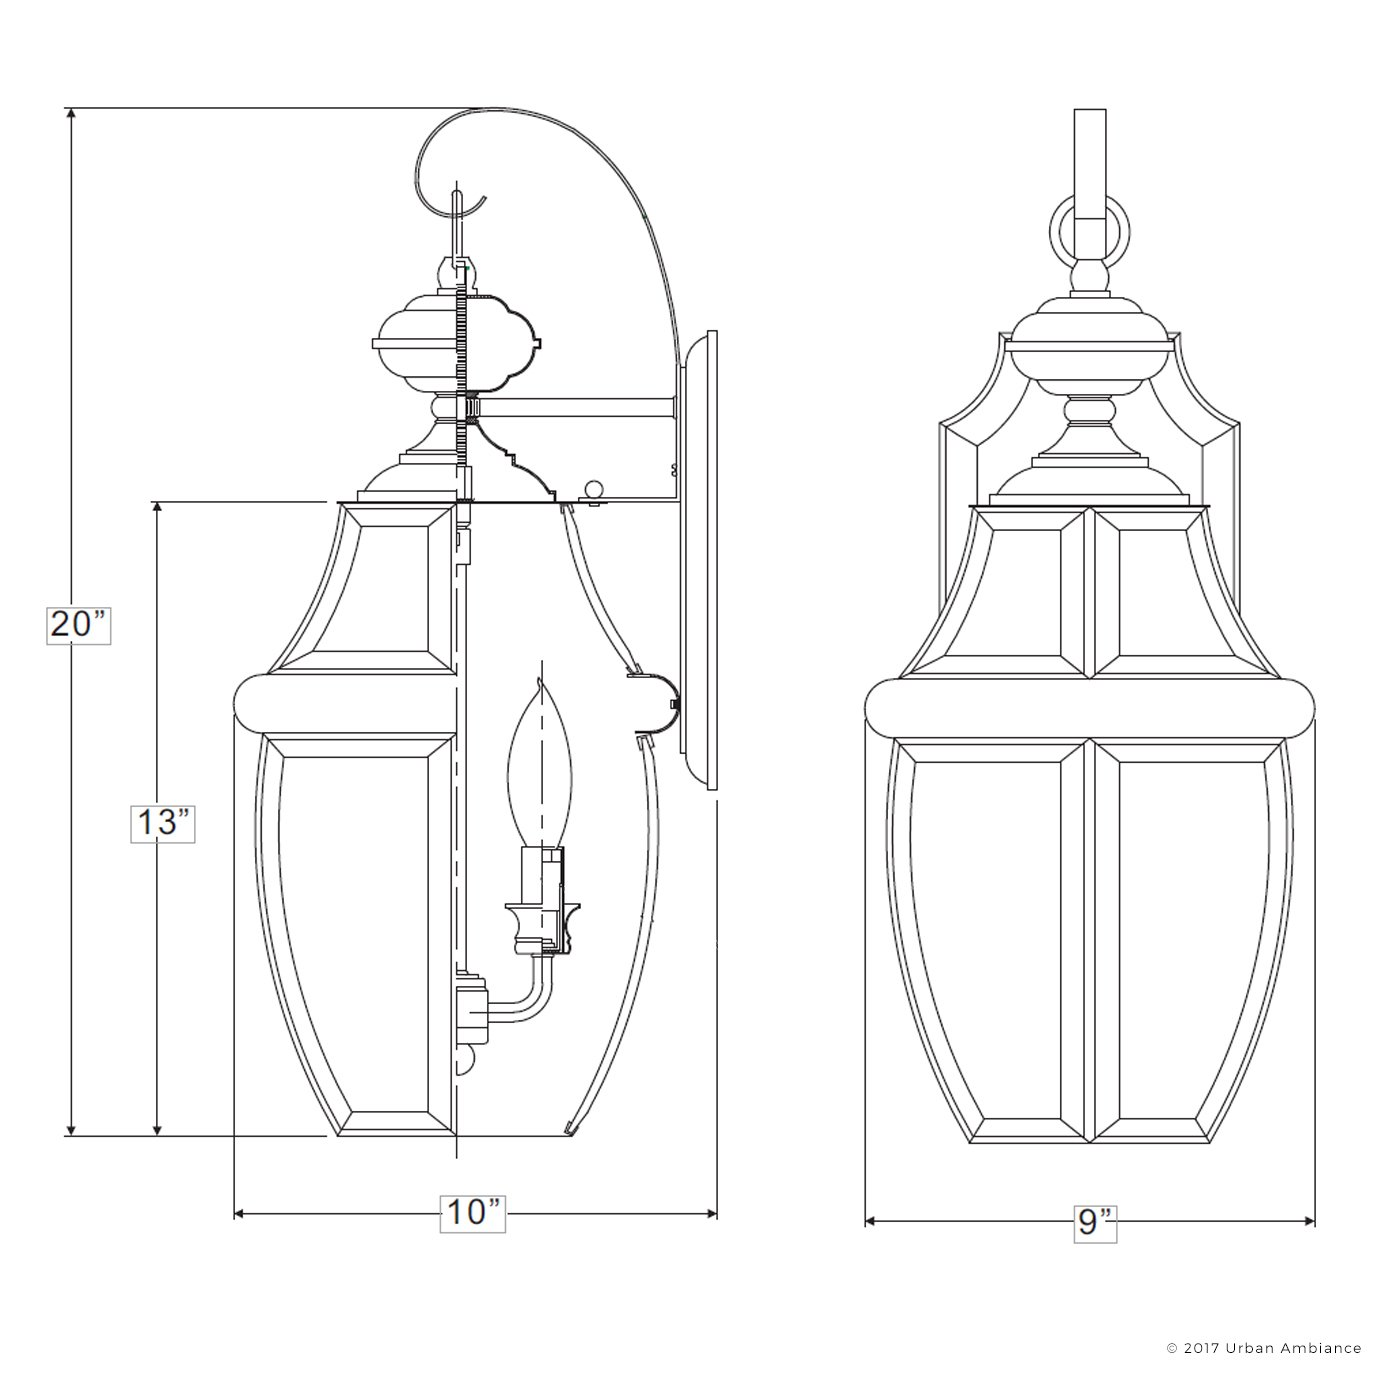 Luxury Colonial Outdoor Wall Light, Large Size: 20''H x 10.5''W, with Tudor Style Elements, Versatile Design, Classy Aged Silver Finish and Beveled Glass, UQL1145 by Urban Ambiance by Urban Ambiance (Image #5)